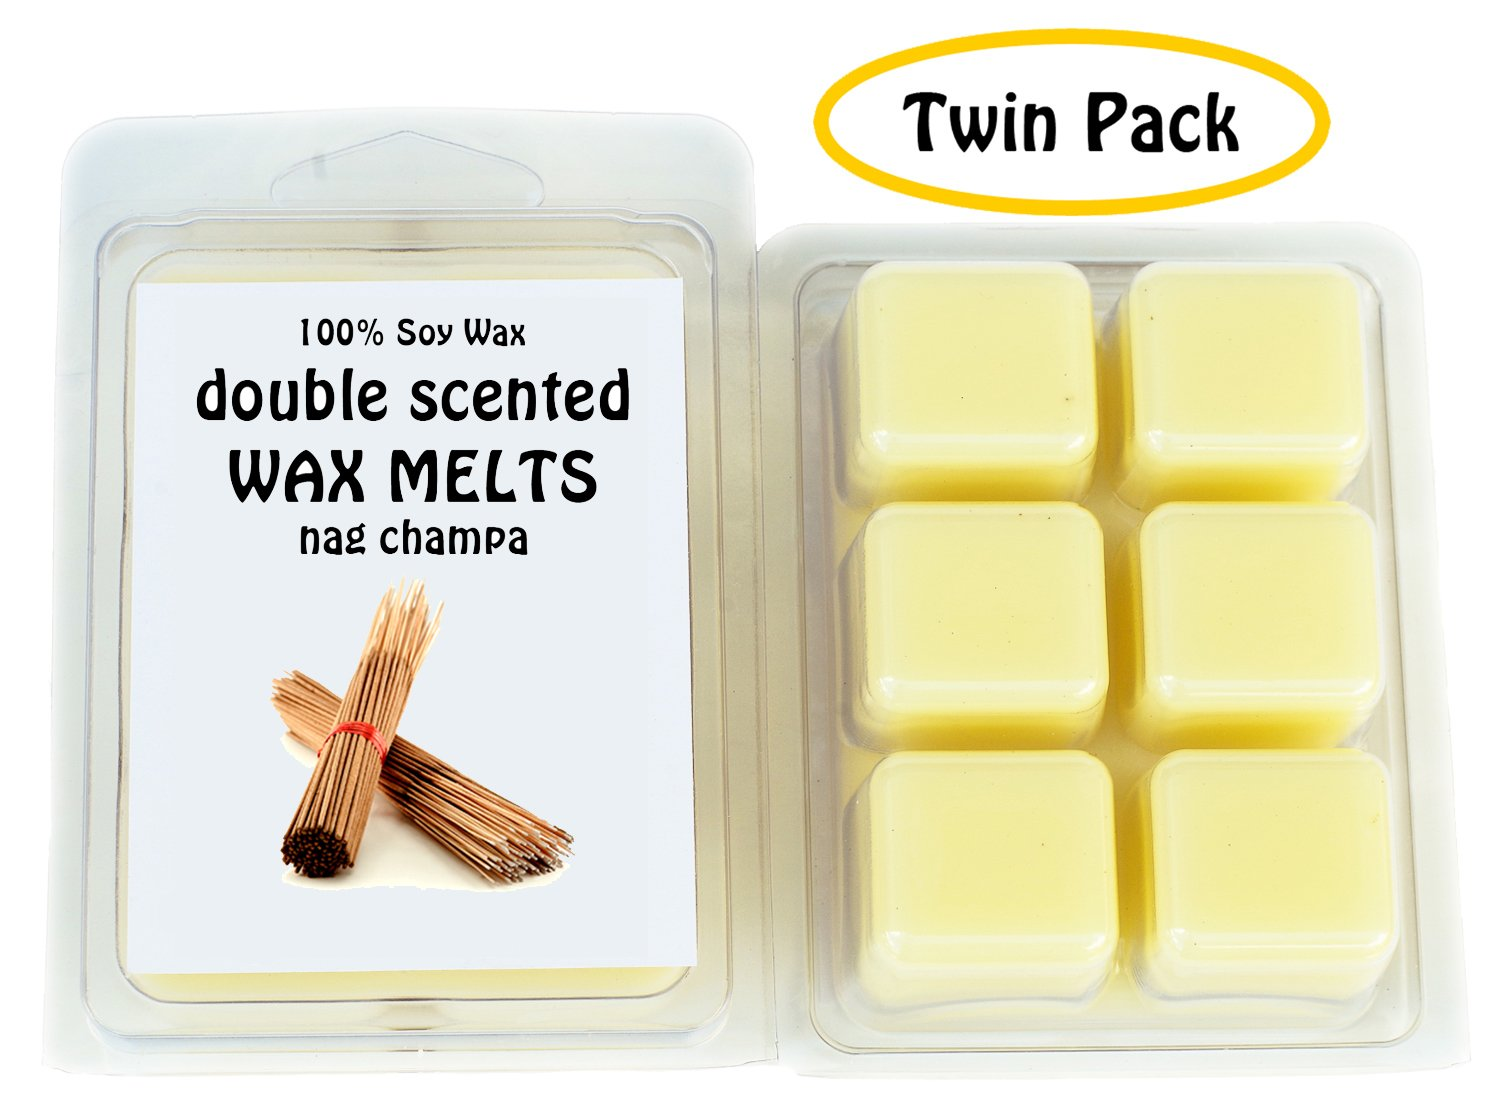 Nag Champa DOUBLE SCENTED SOY WAX MELTS Twin Pack-6.5oz Made in USA WAX TARTS